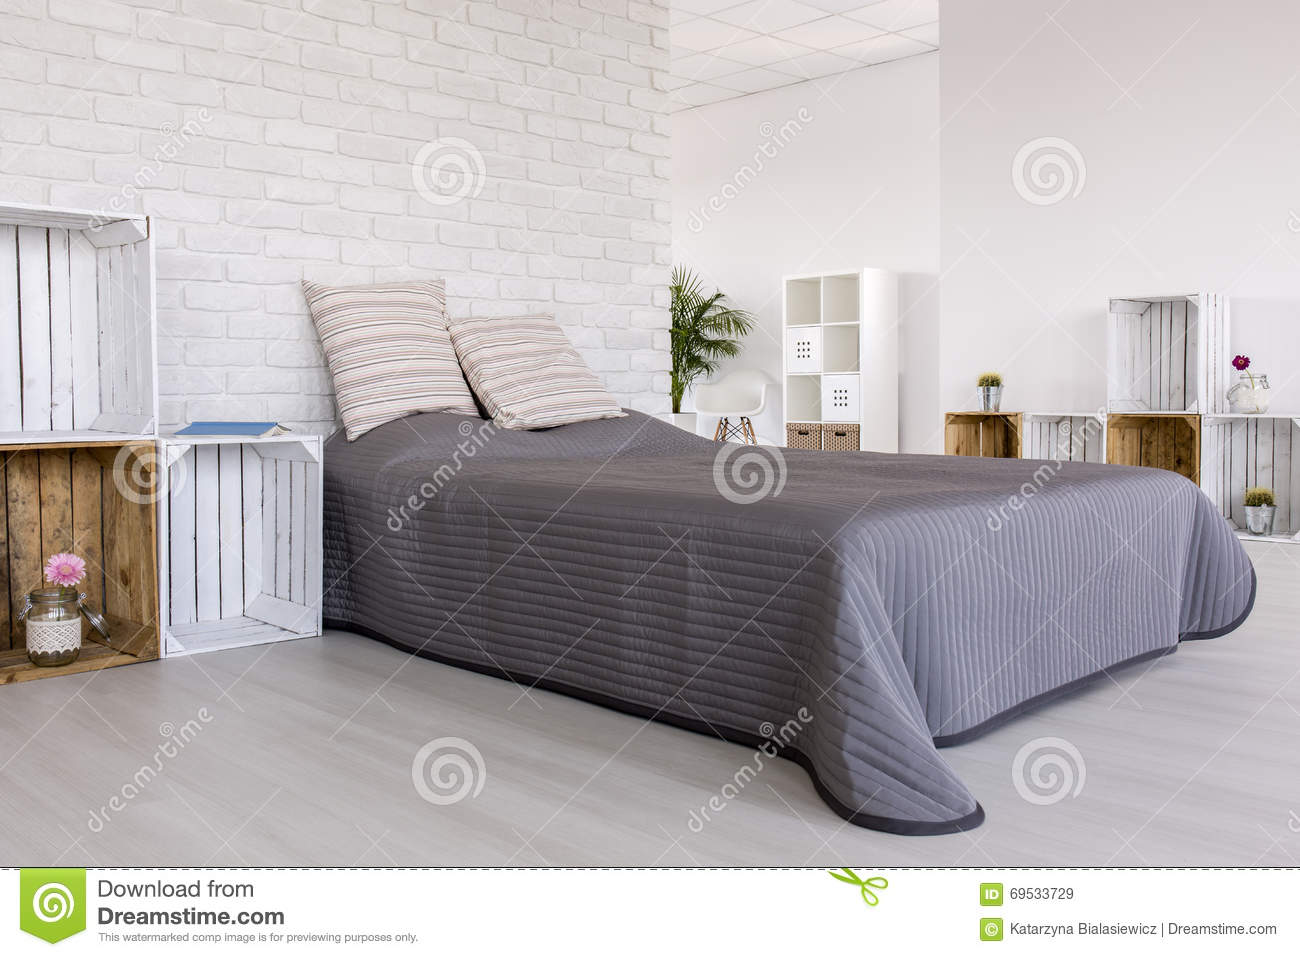 astounding bedroom brick wall | A Little Bit Of Creativity For Amazing Bedroom Stock Image ...